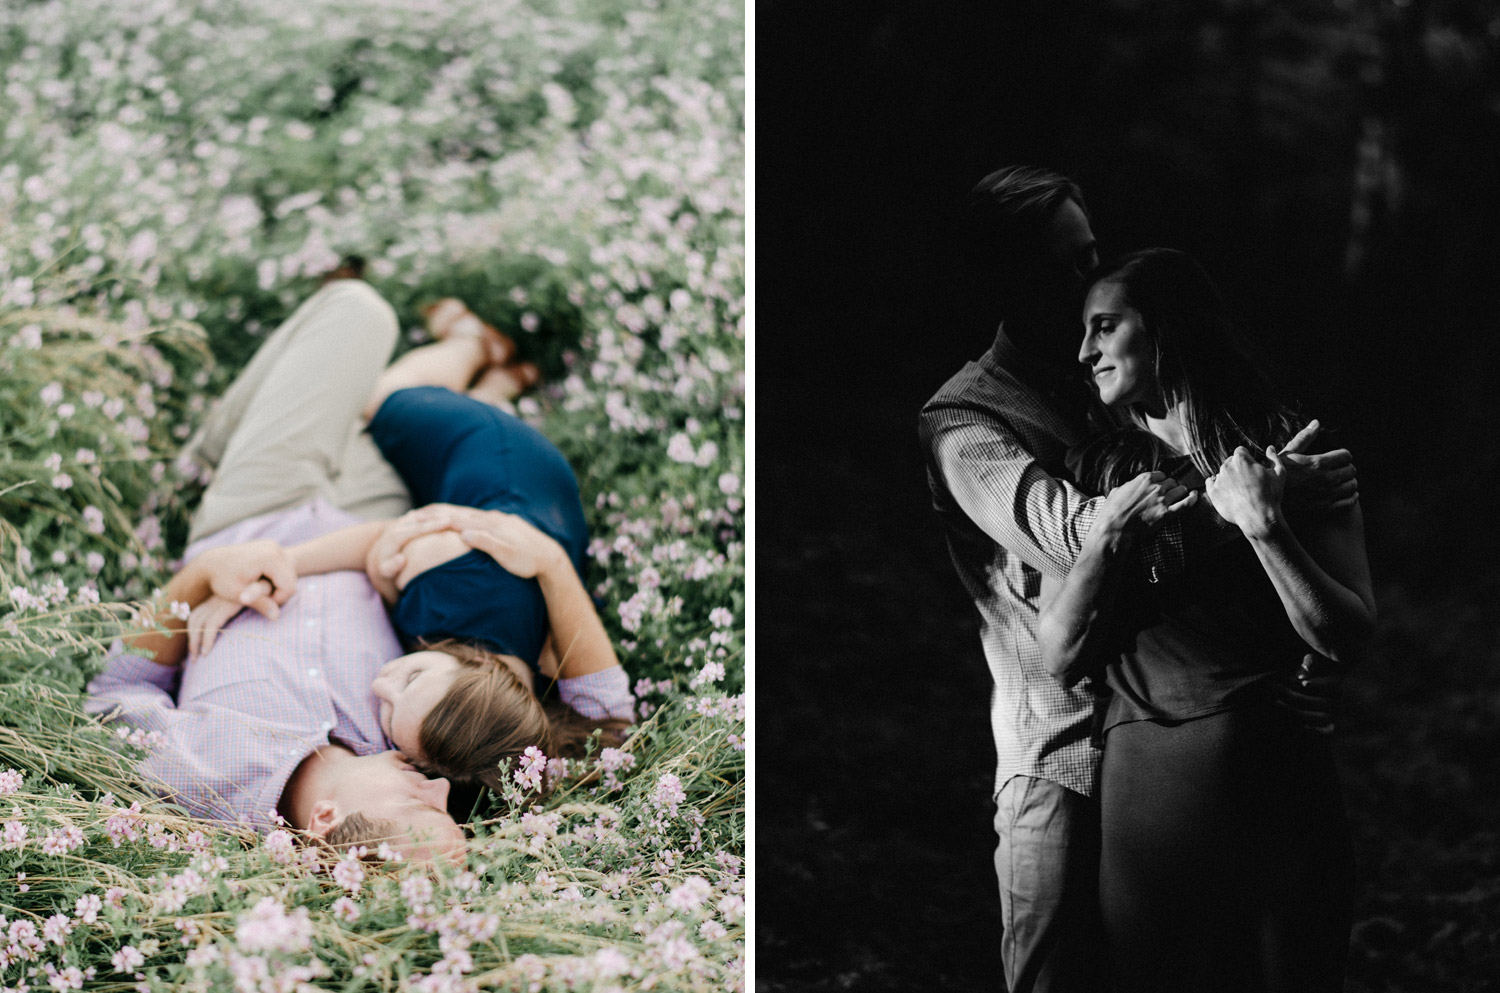 Creative Engagement photography by geneoh photography